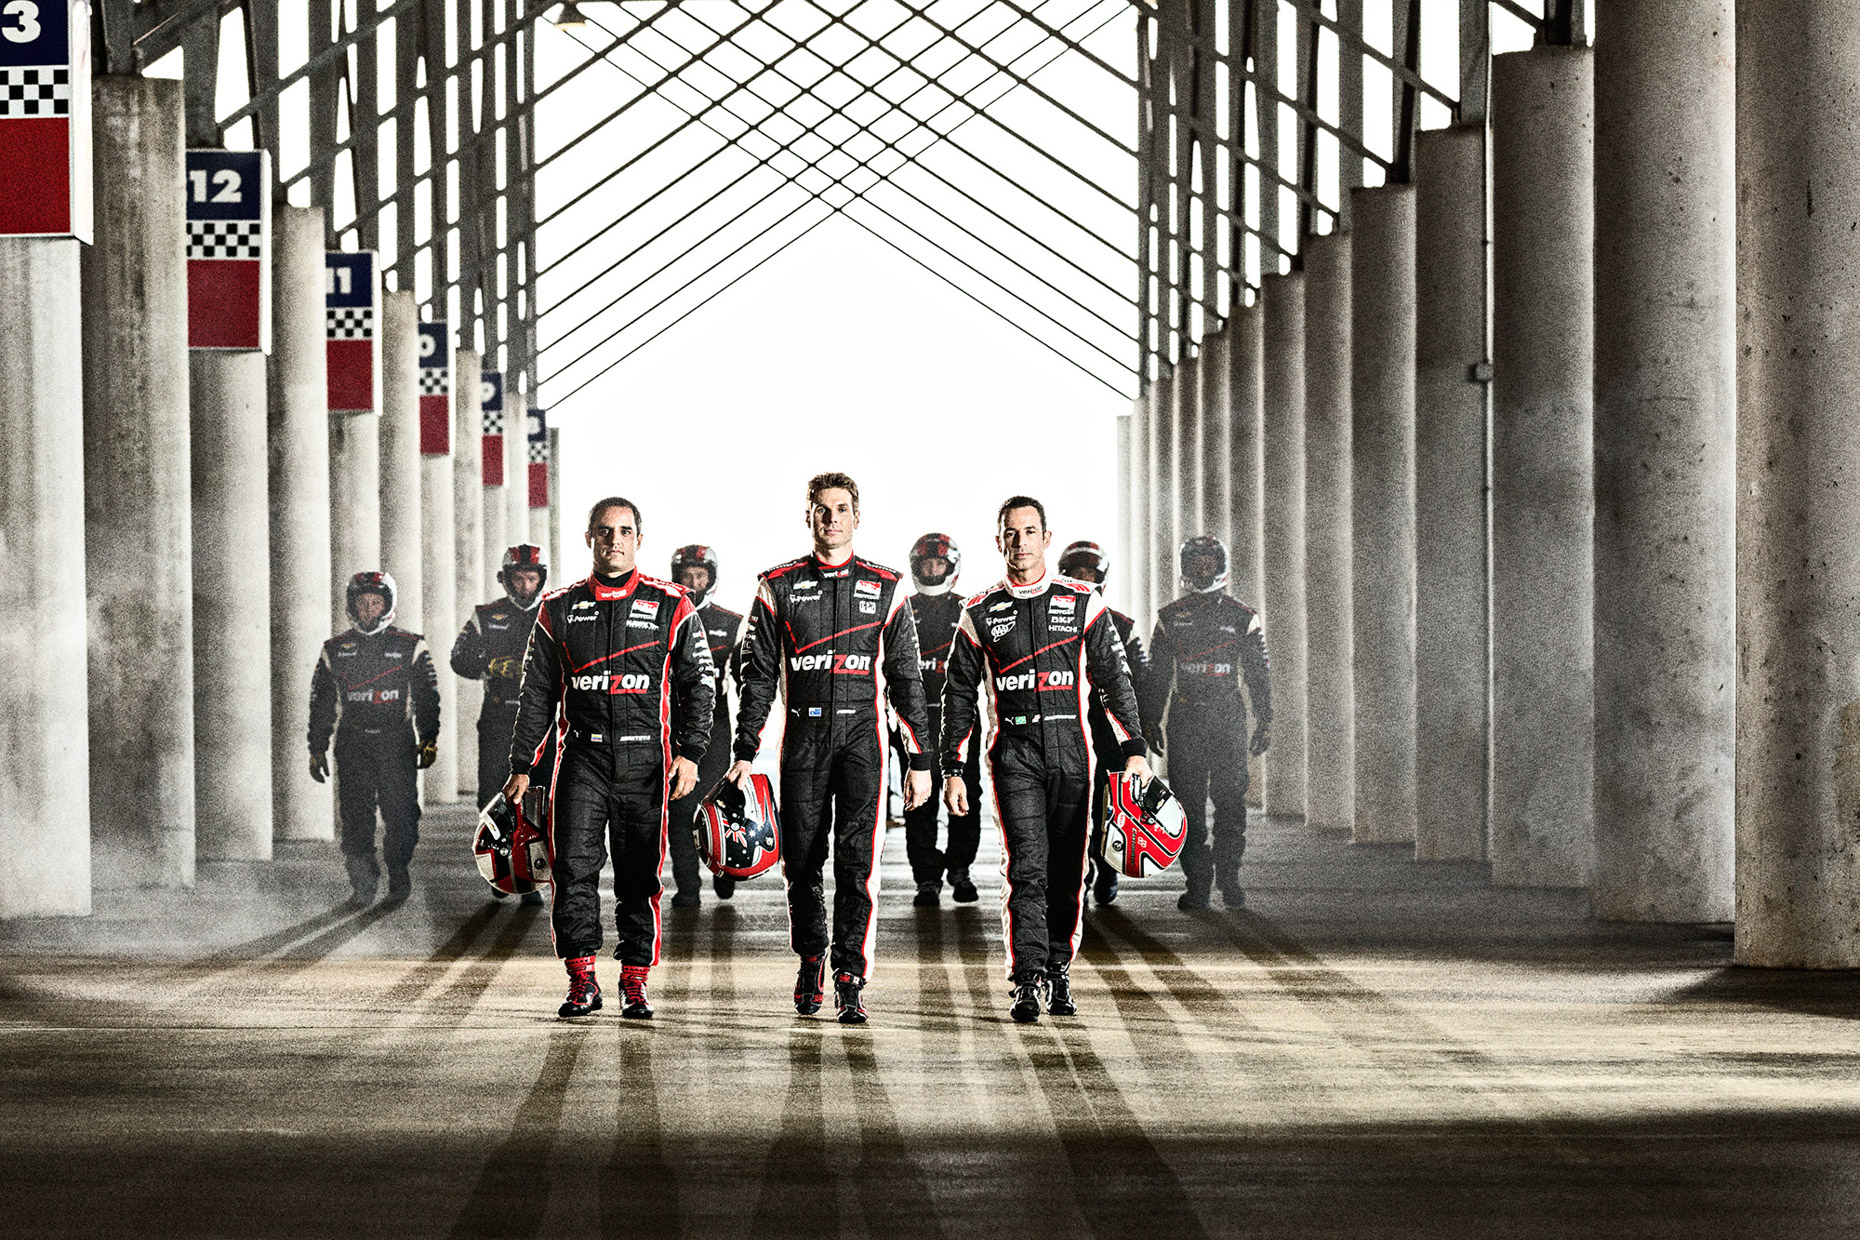 Penske Indycar racers and pit crew for Verizon